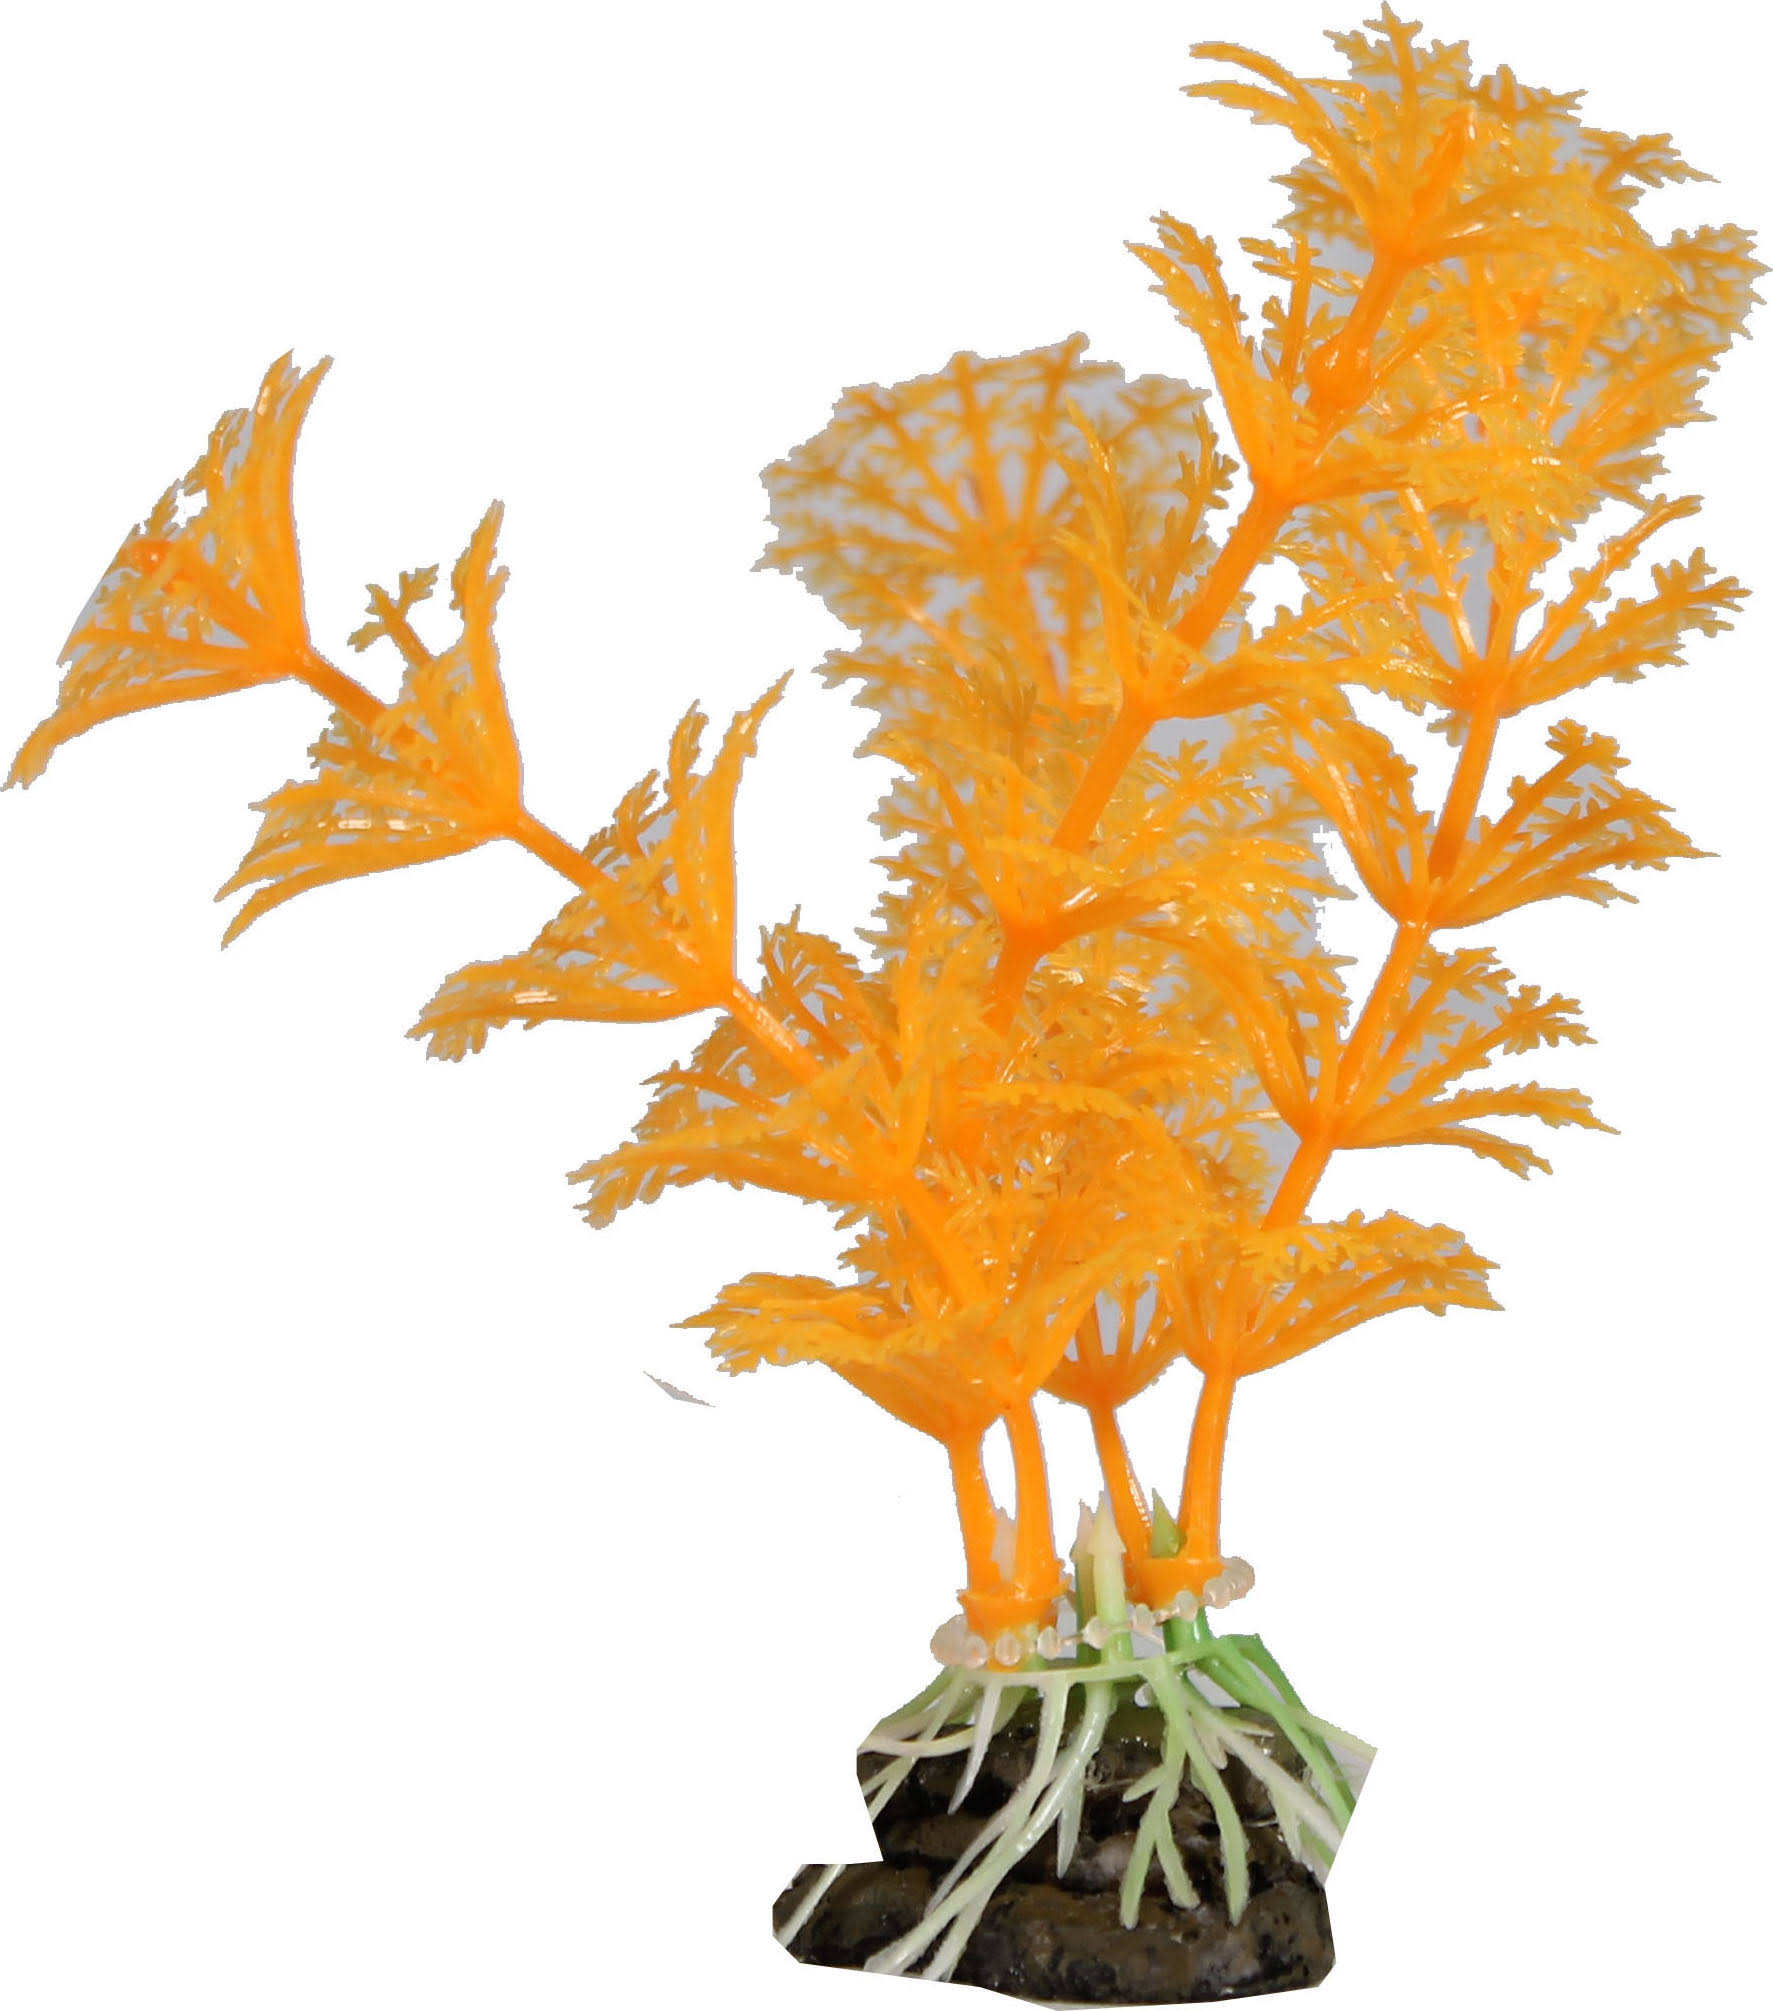 Elive Glow Elements Cabomba Plant Ornament (Neon Tangerine 4 inch)